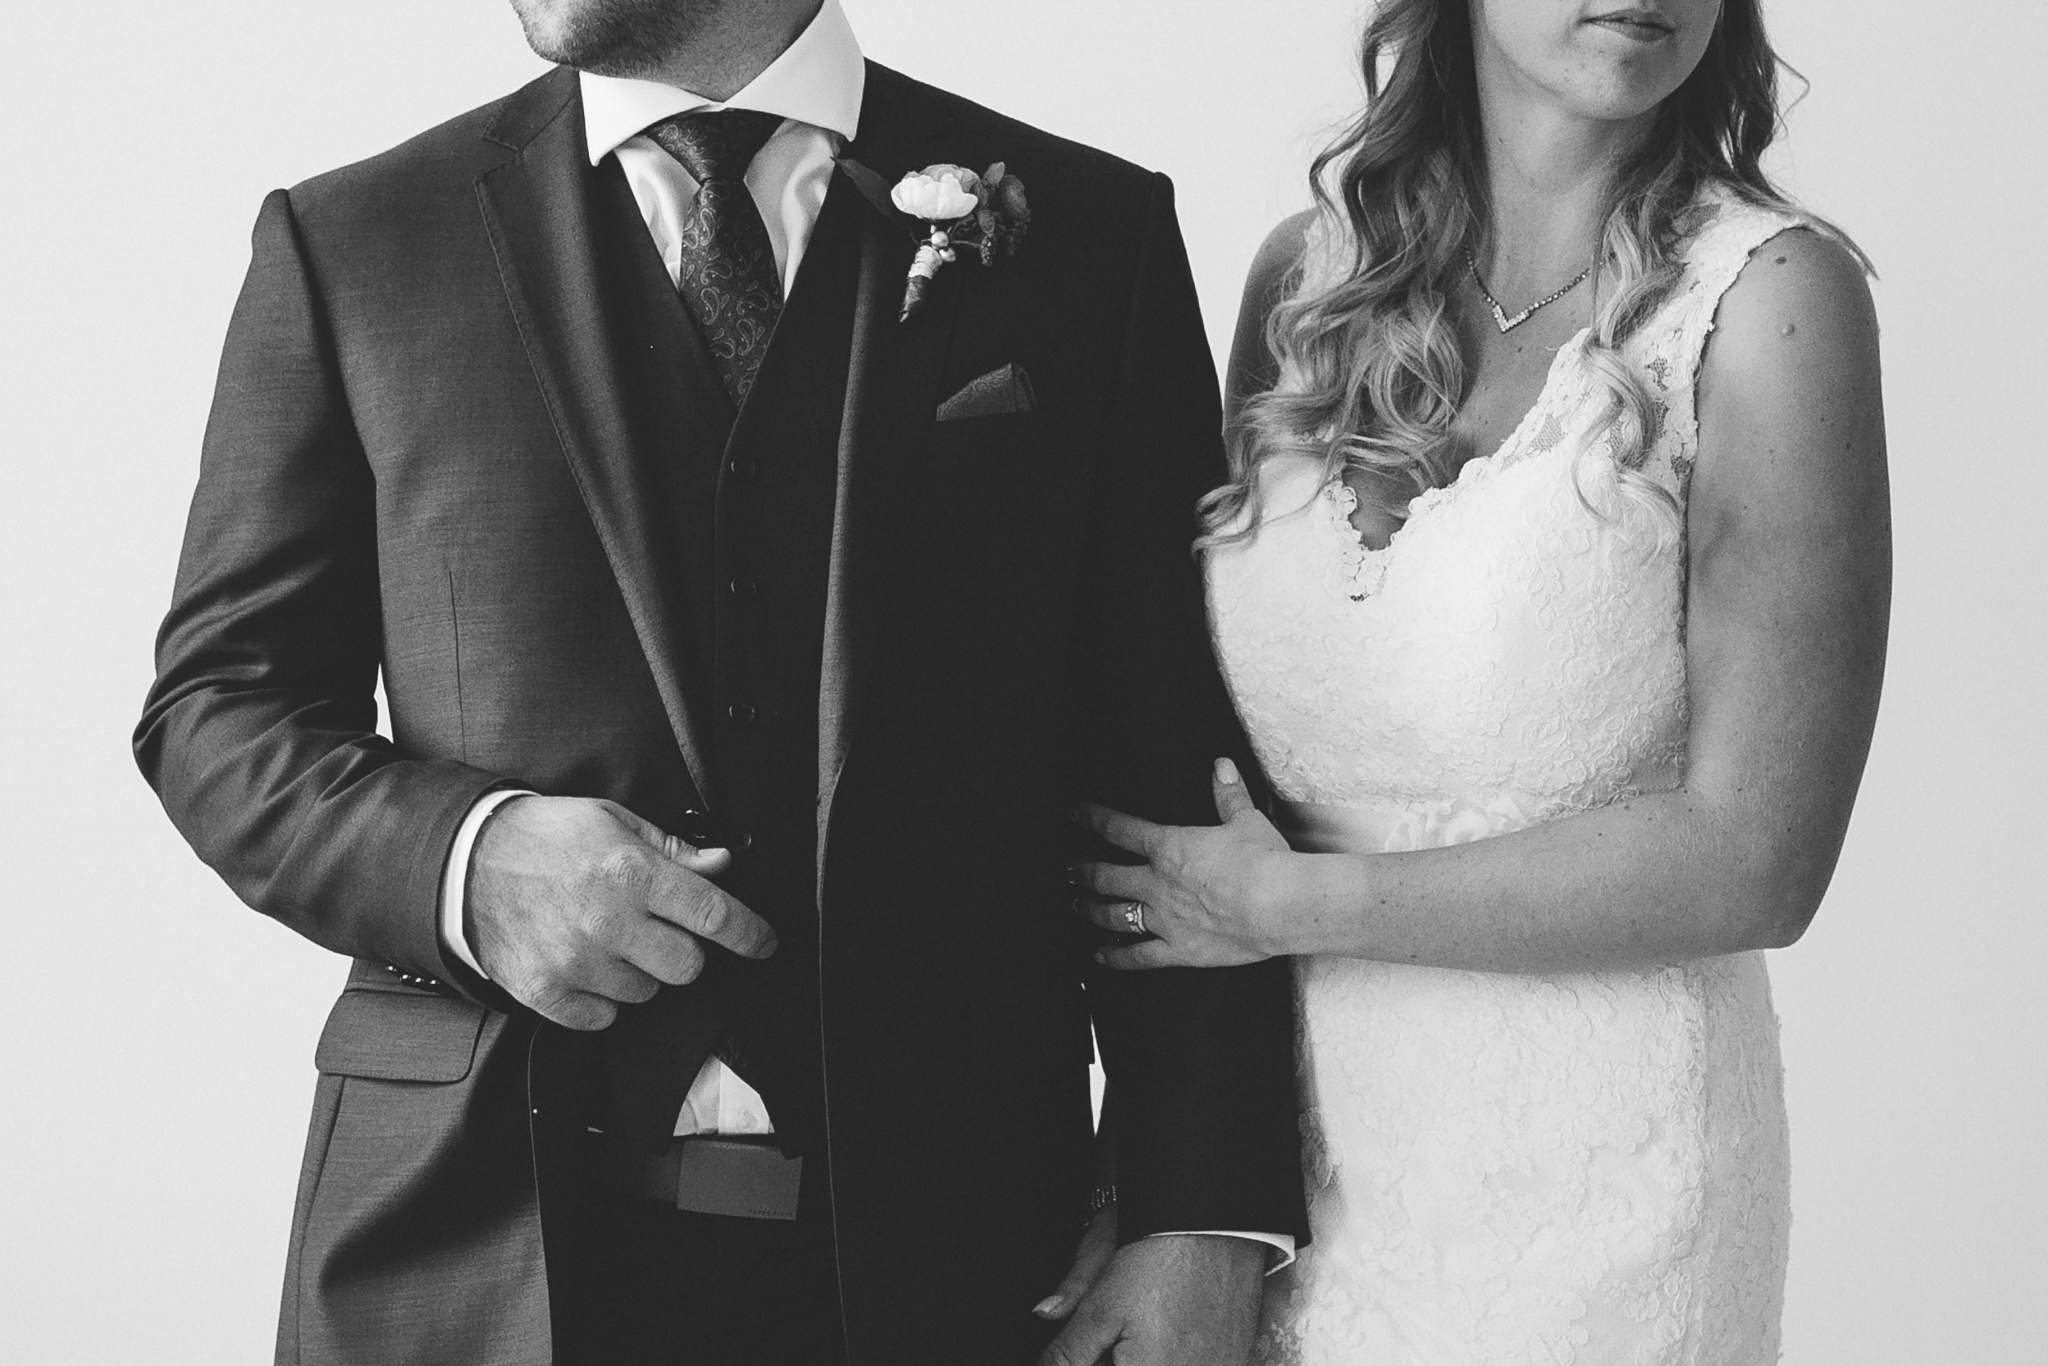 lethbridge-photographer-love-and-be-loved-photography-designed-to-dwell-wedding-katie-kelly-photo-image-picture-17.jpg